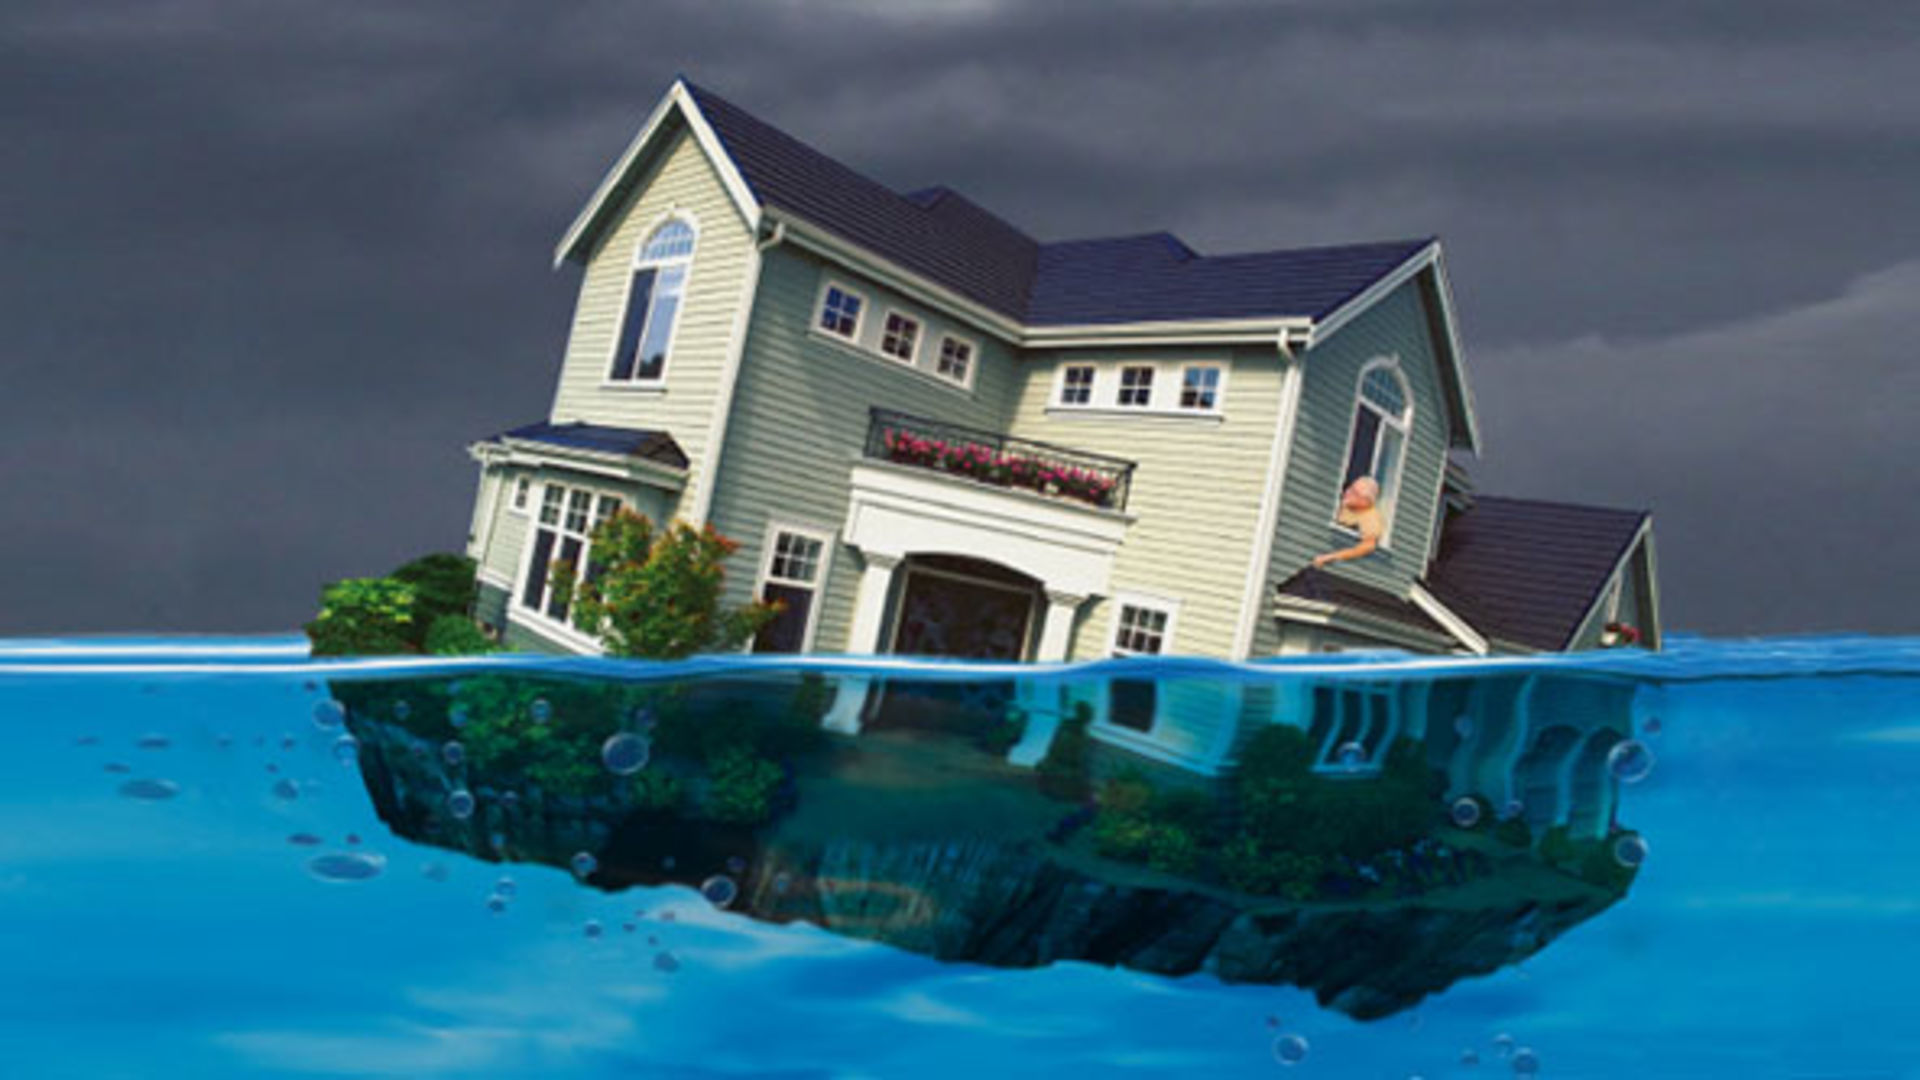 Underwater Homes reach 6 year low in Johnson County Kansas